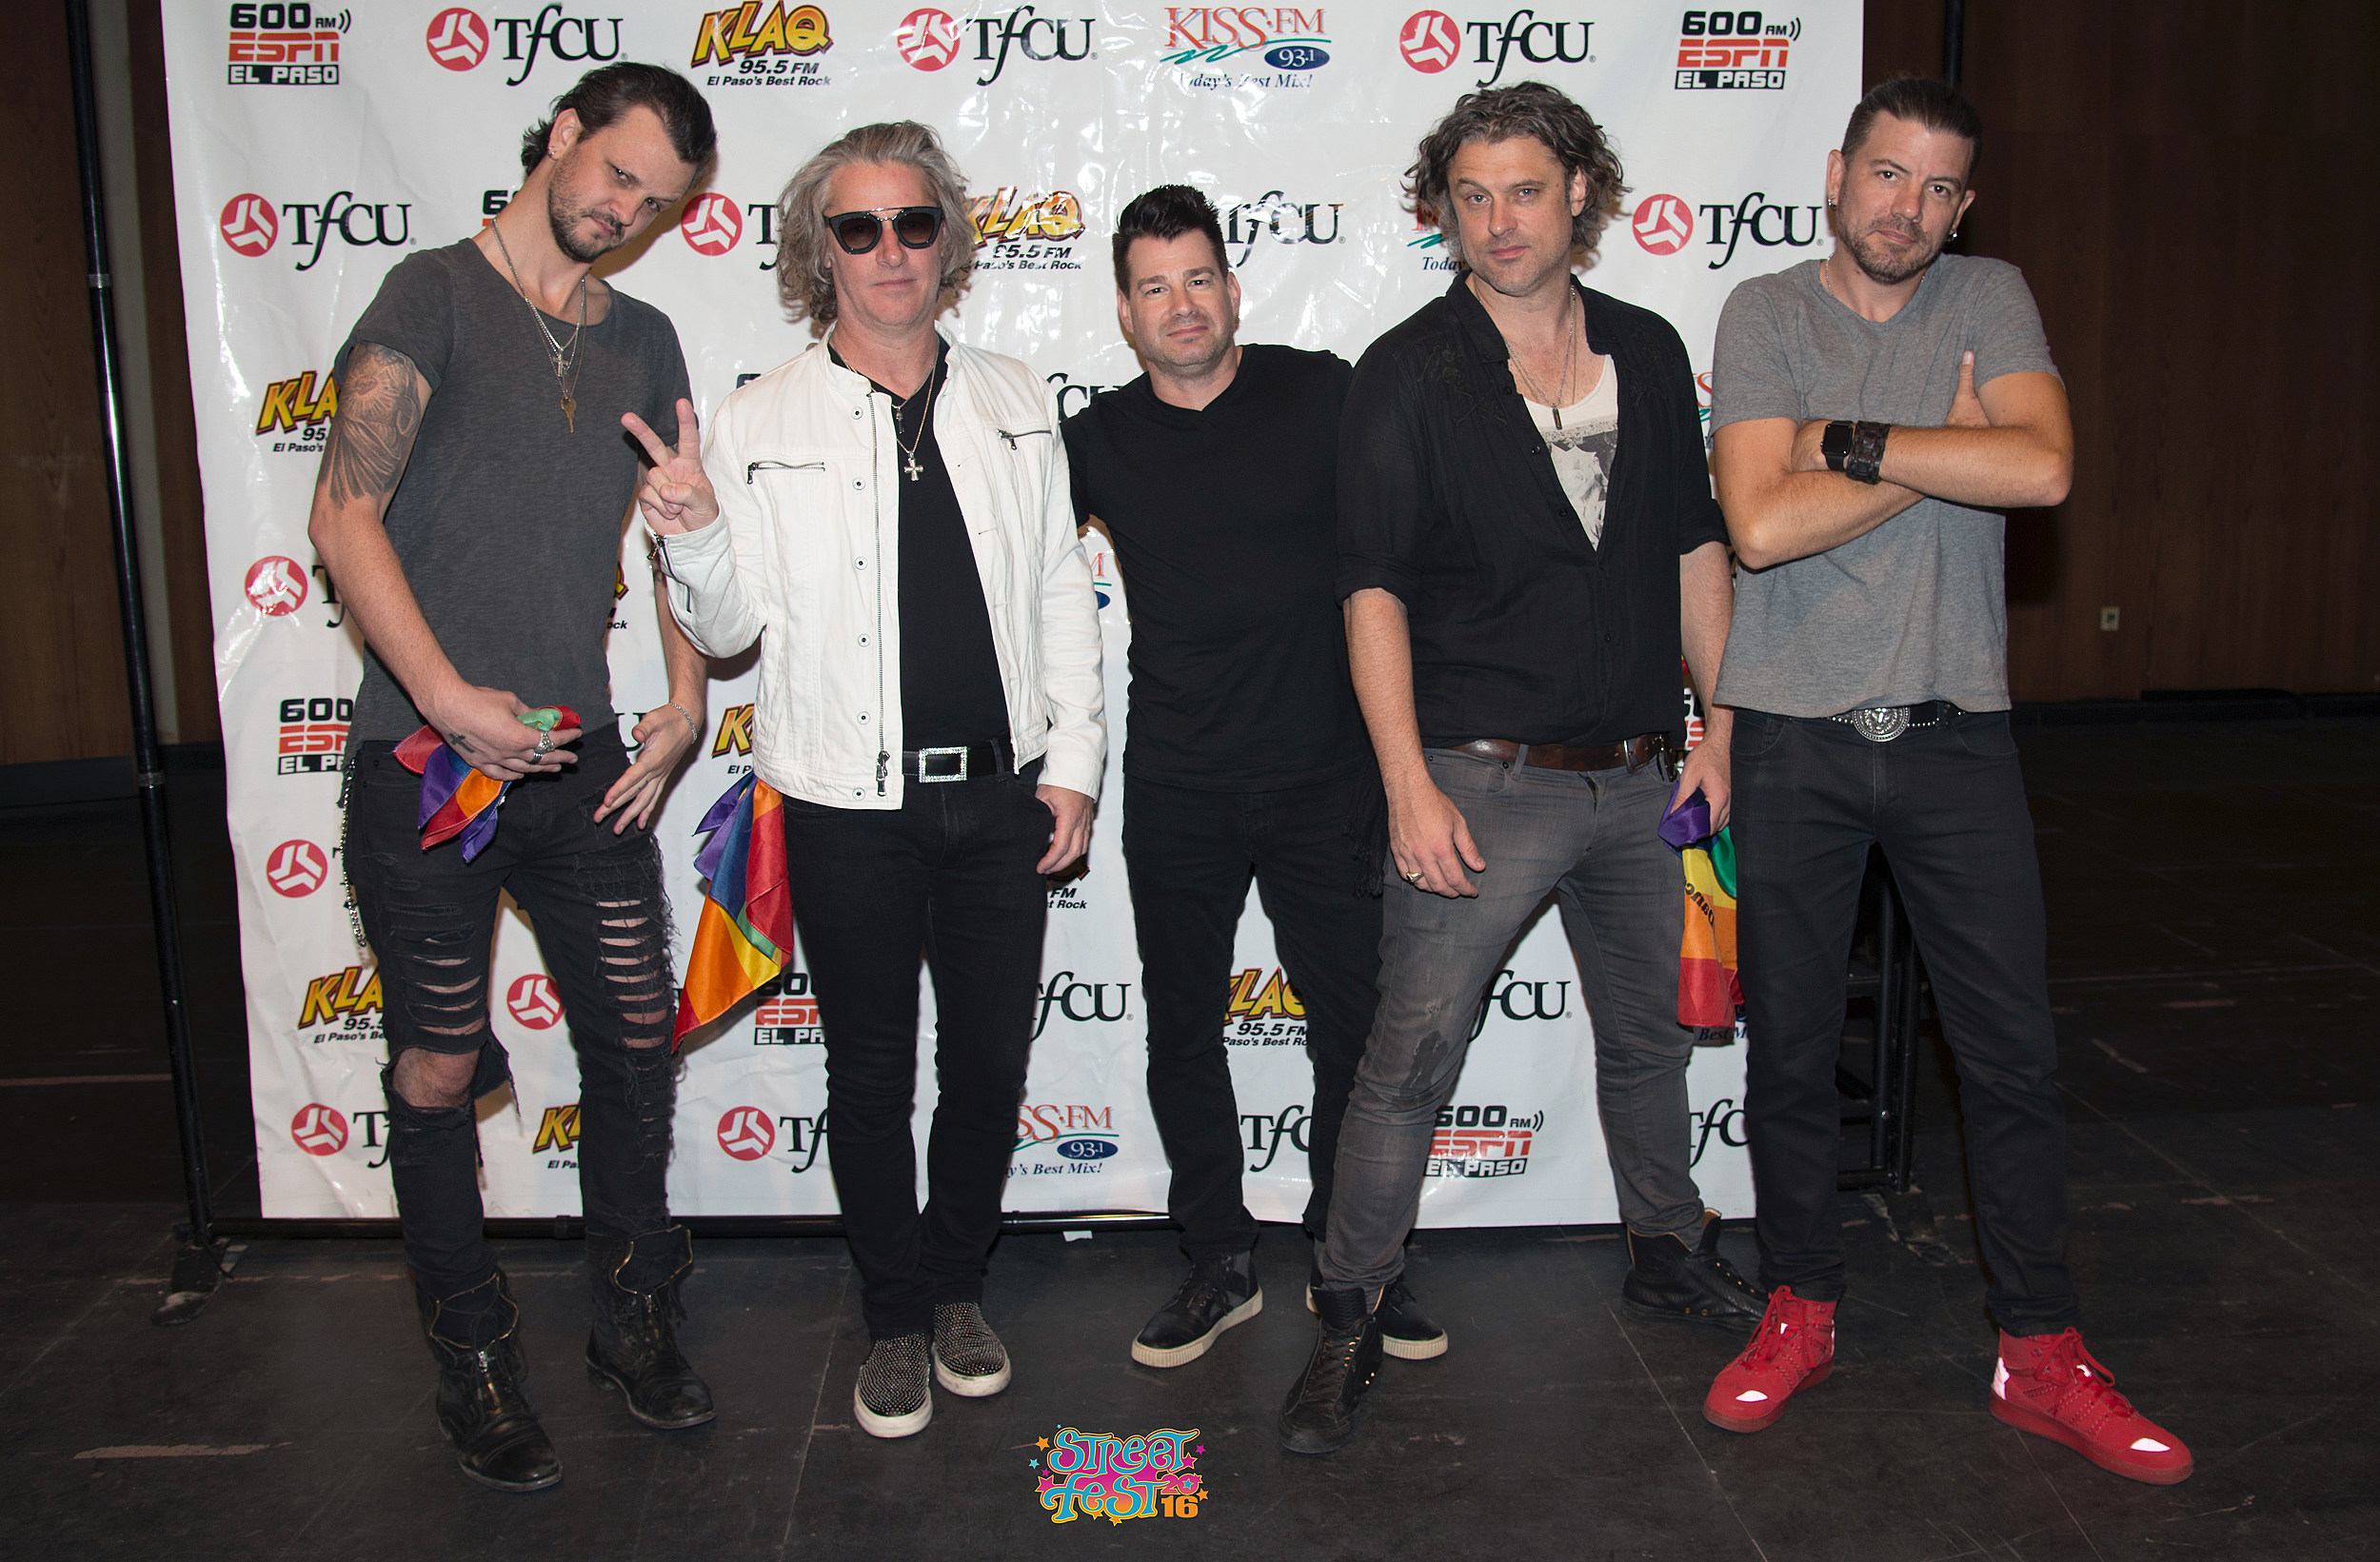 2016 Streetfest Meet And Greet Photos With Collective Soul